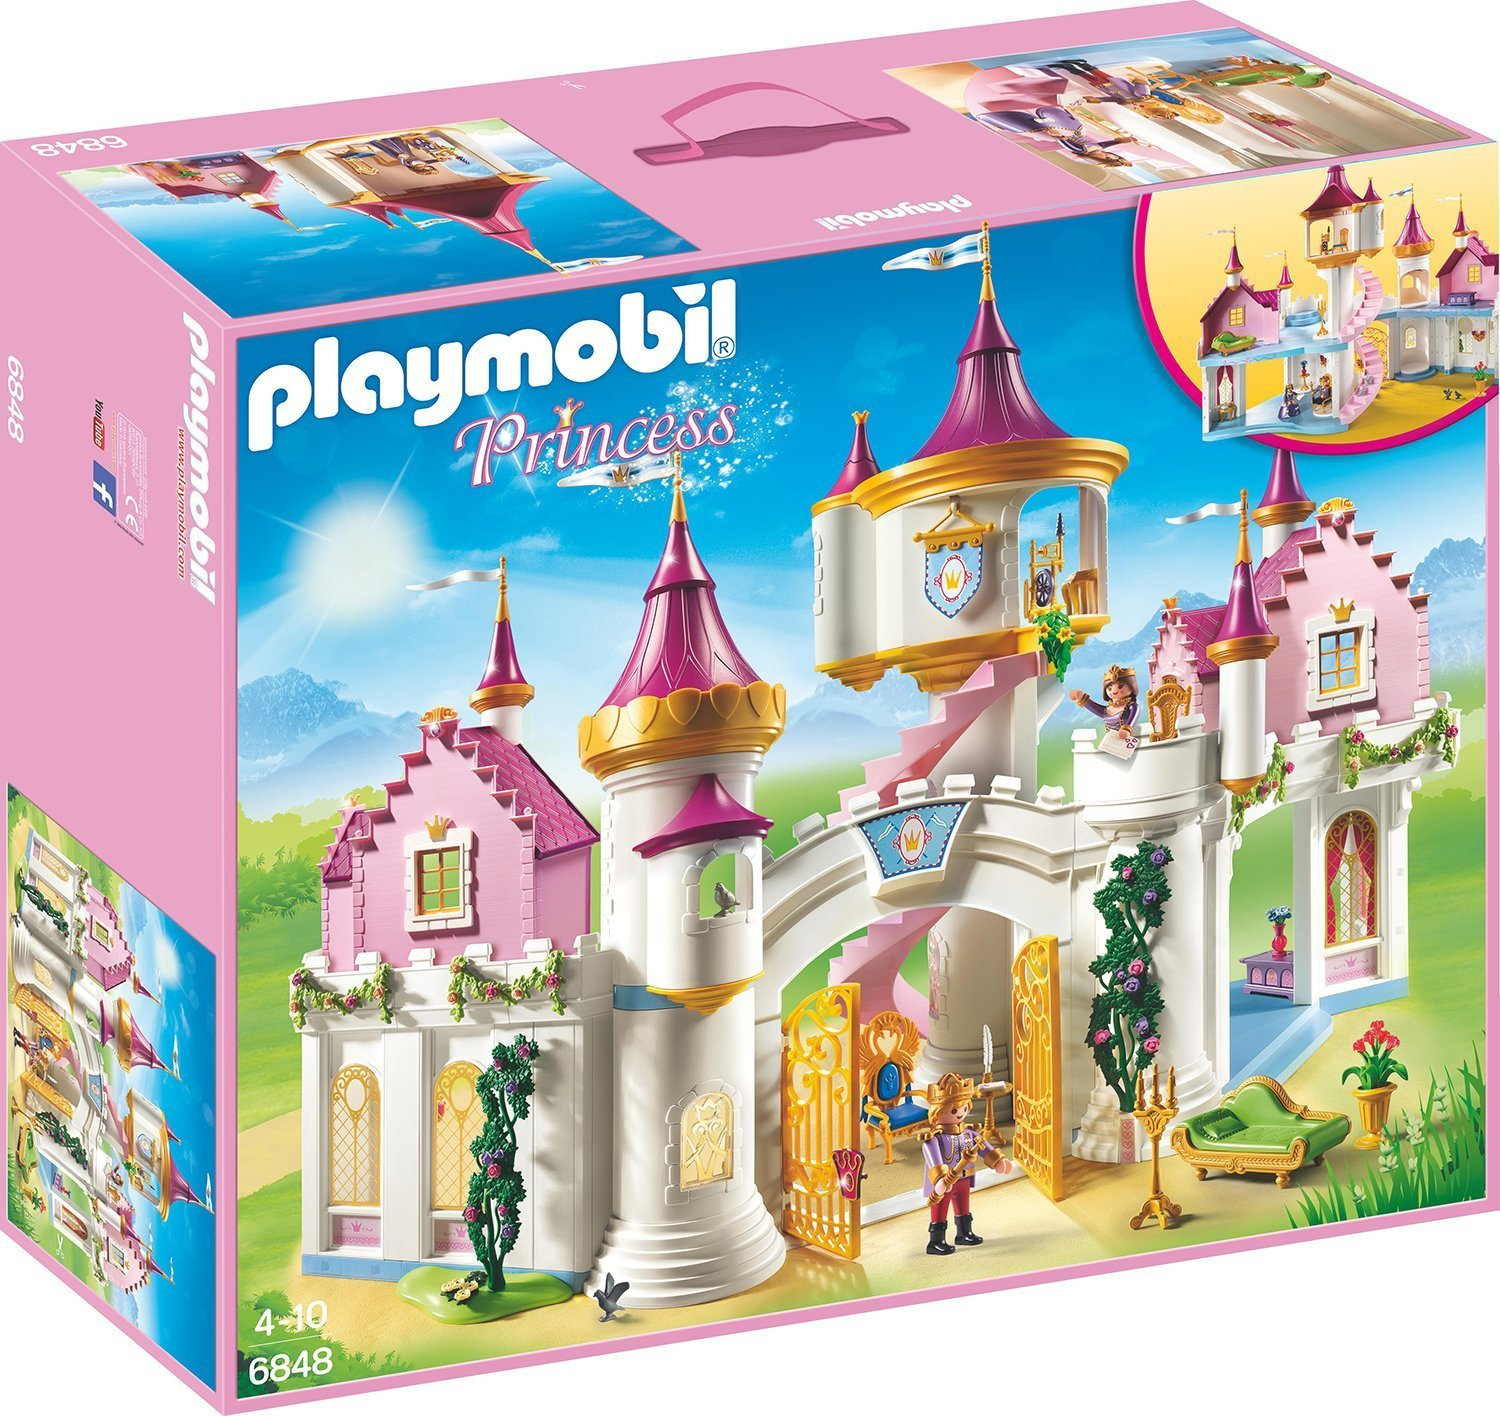 Playmobil Prinzessinnenschloss amazon